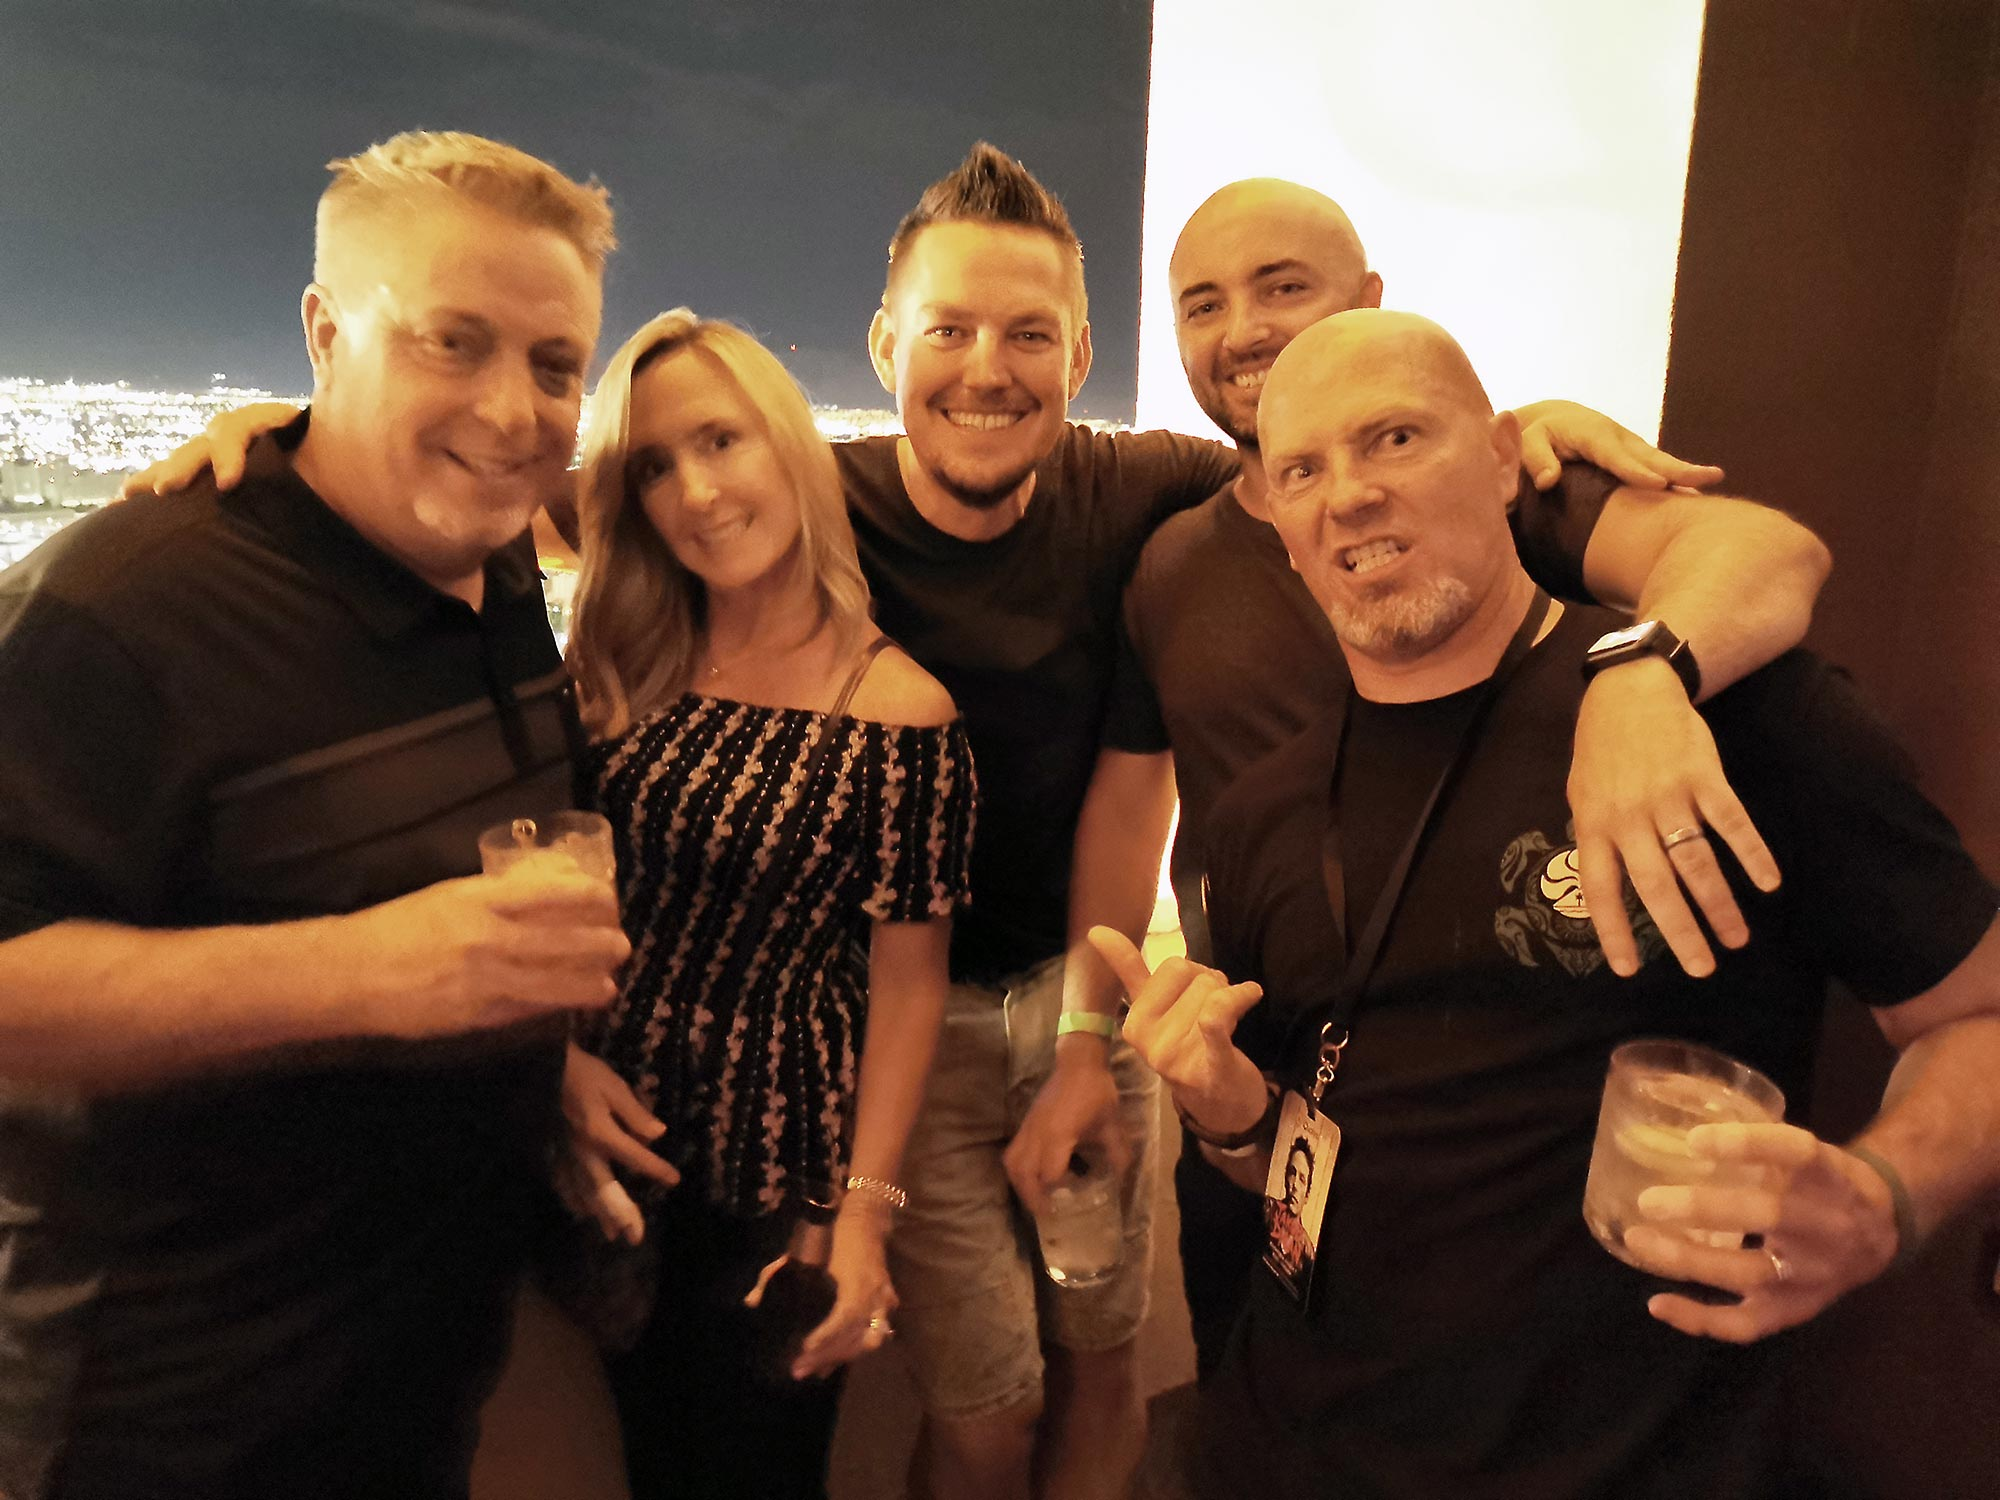 IT Security Teams - Qualys After Show Party at Mandalay Bay - IT Professionals